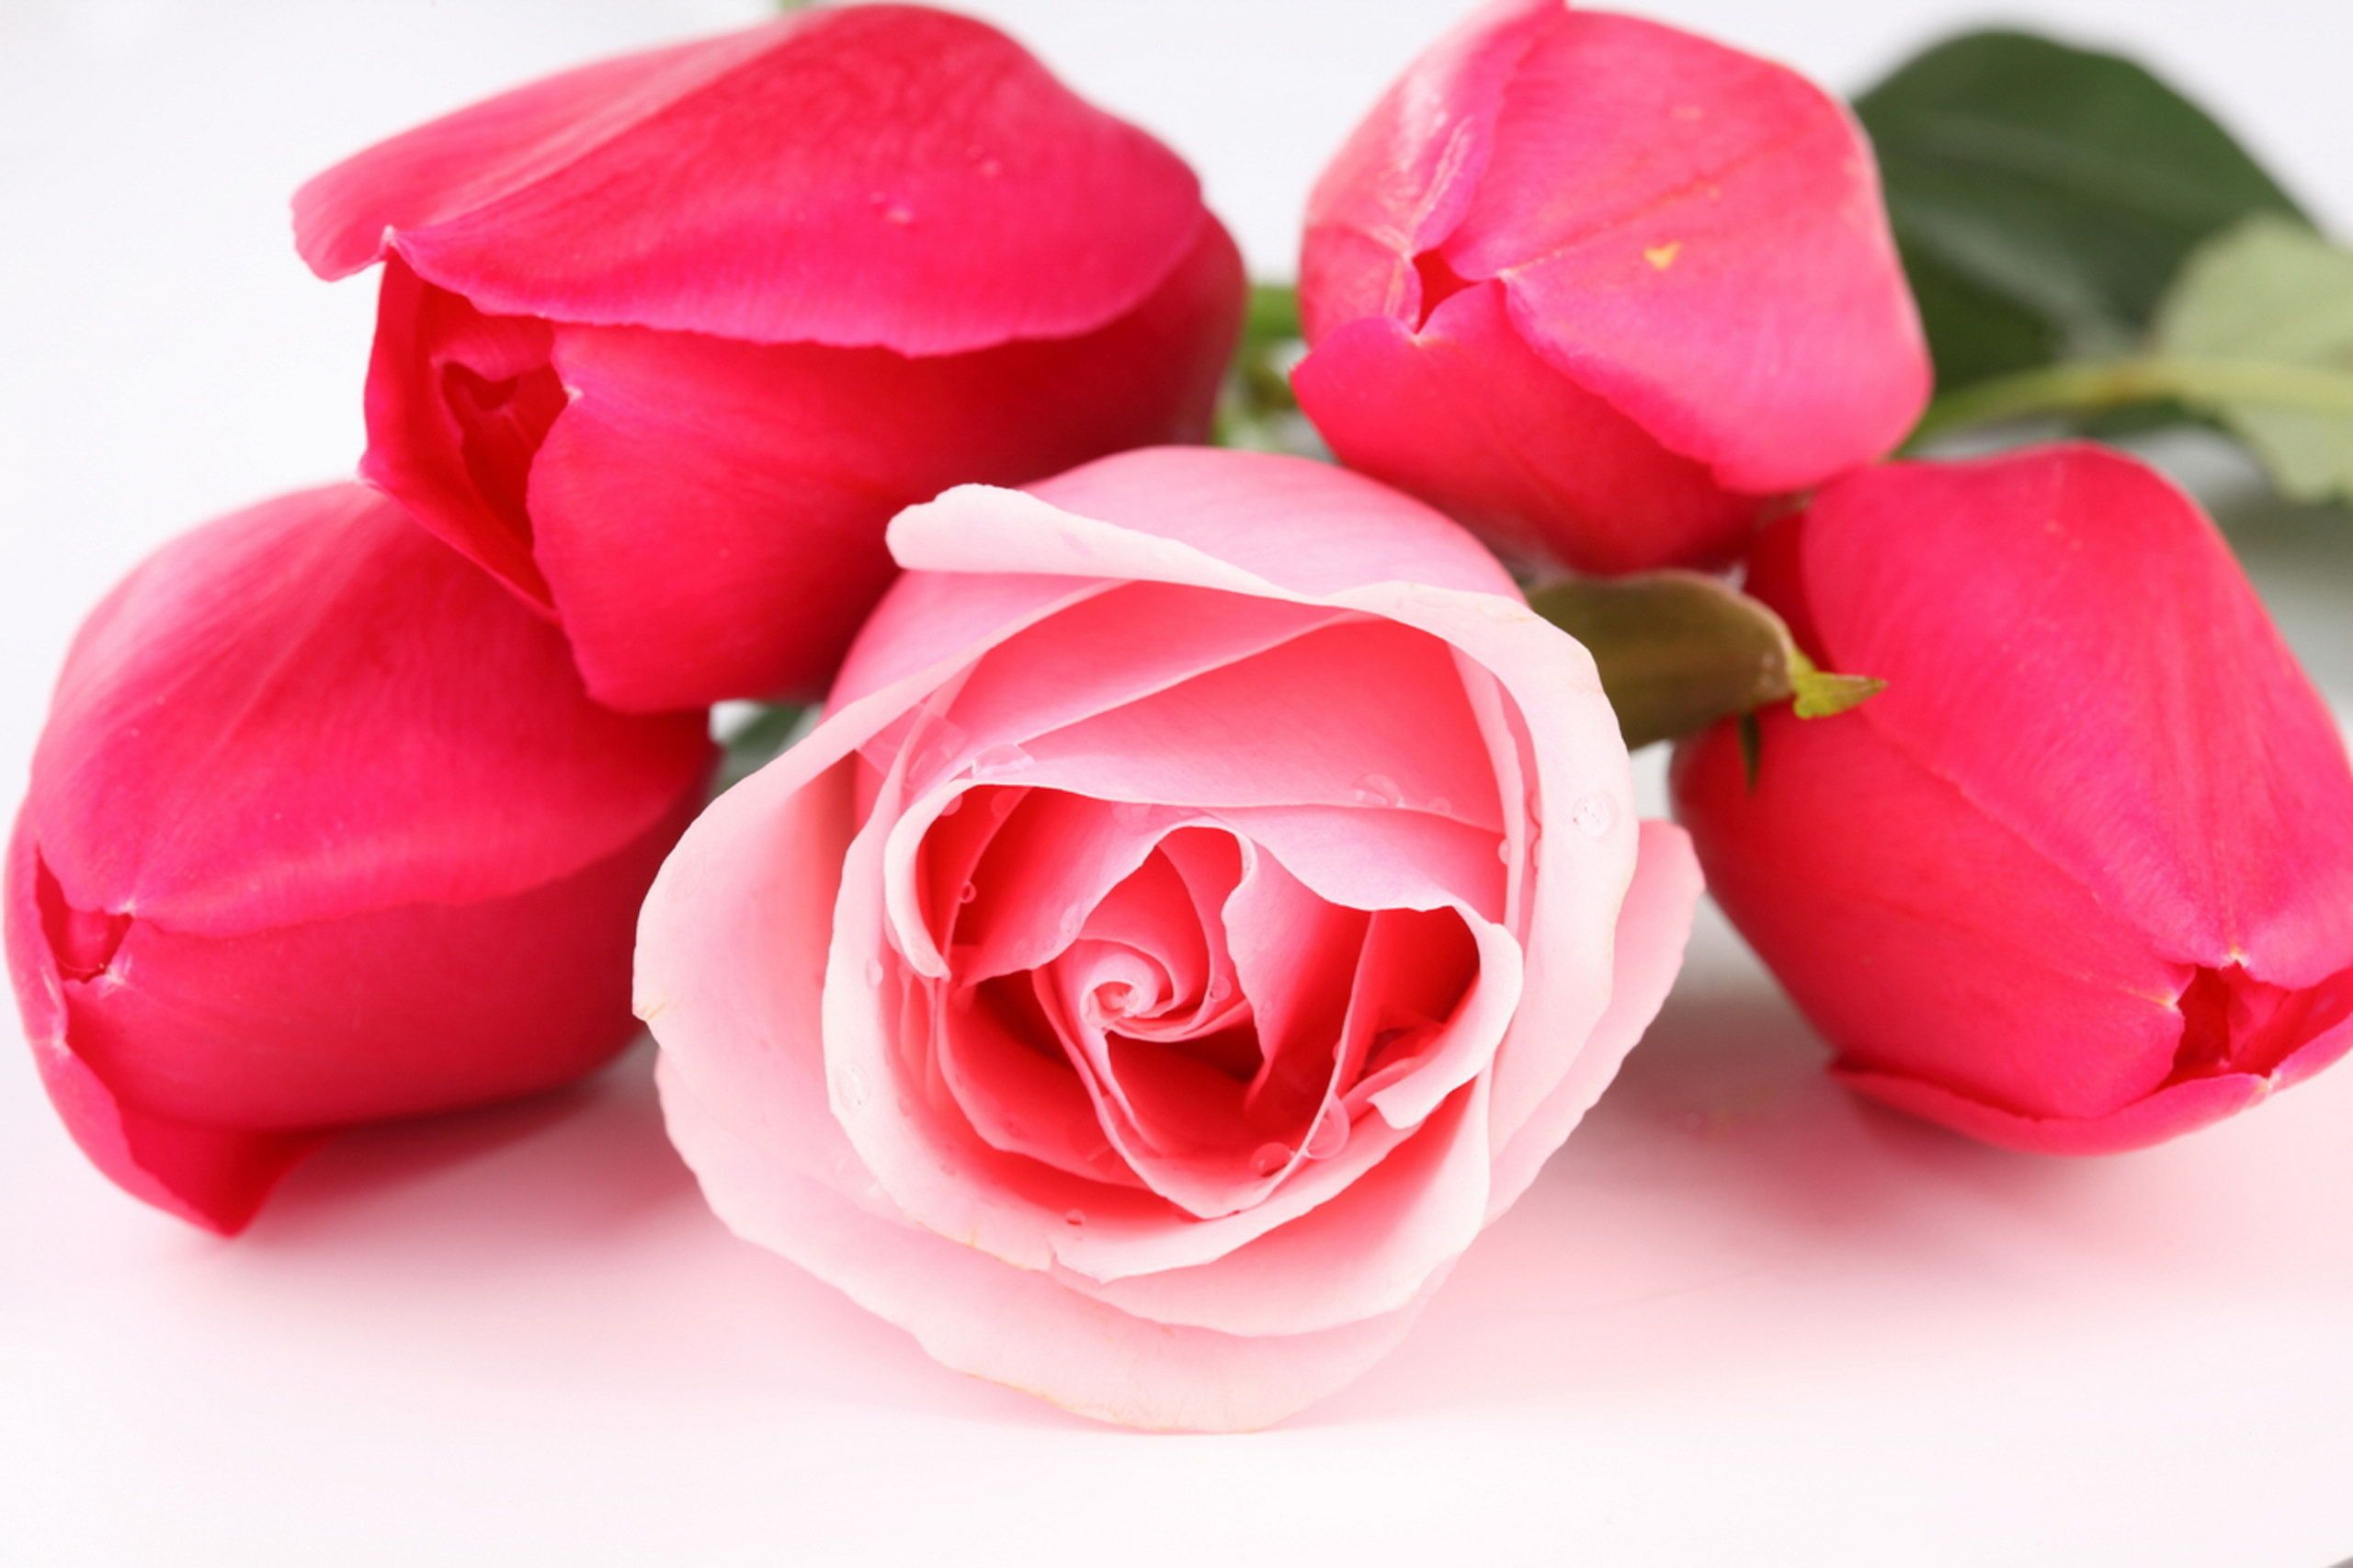 3d Rose Wallpaper Desktop  Beautiful flowers pictures, Most